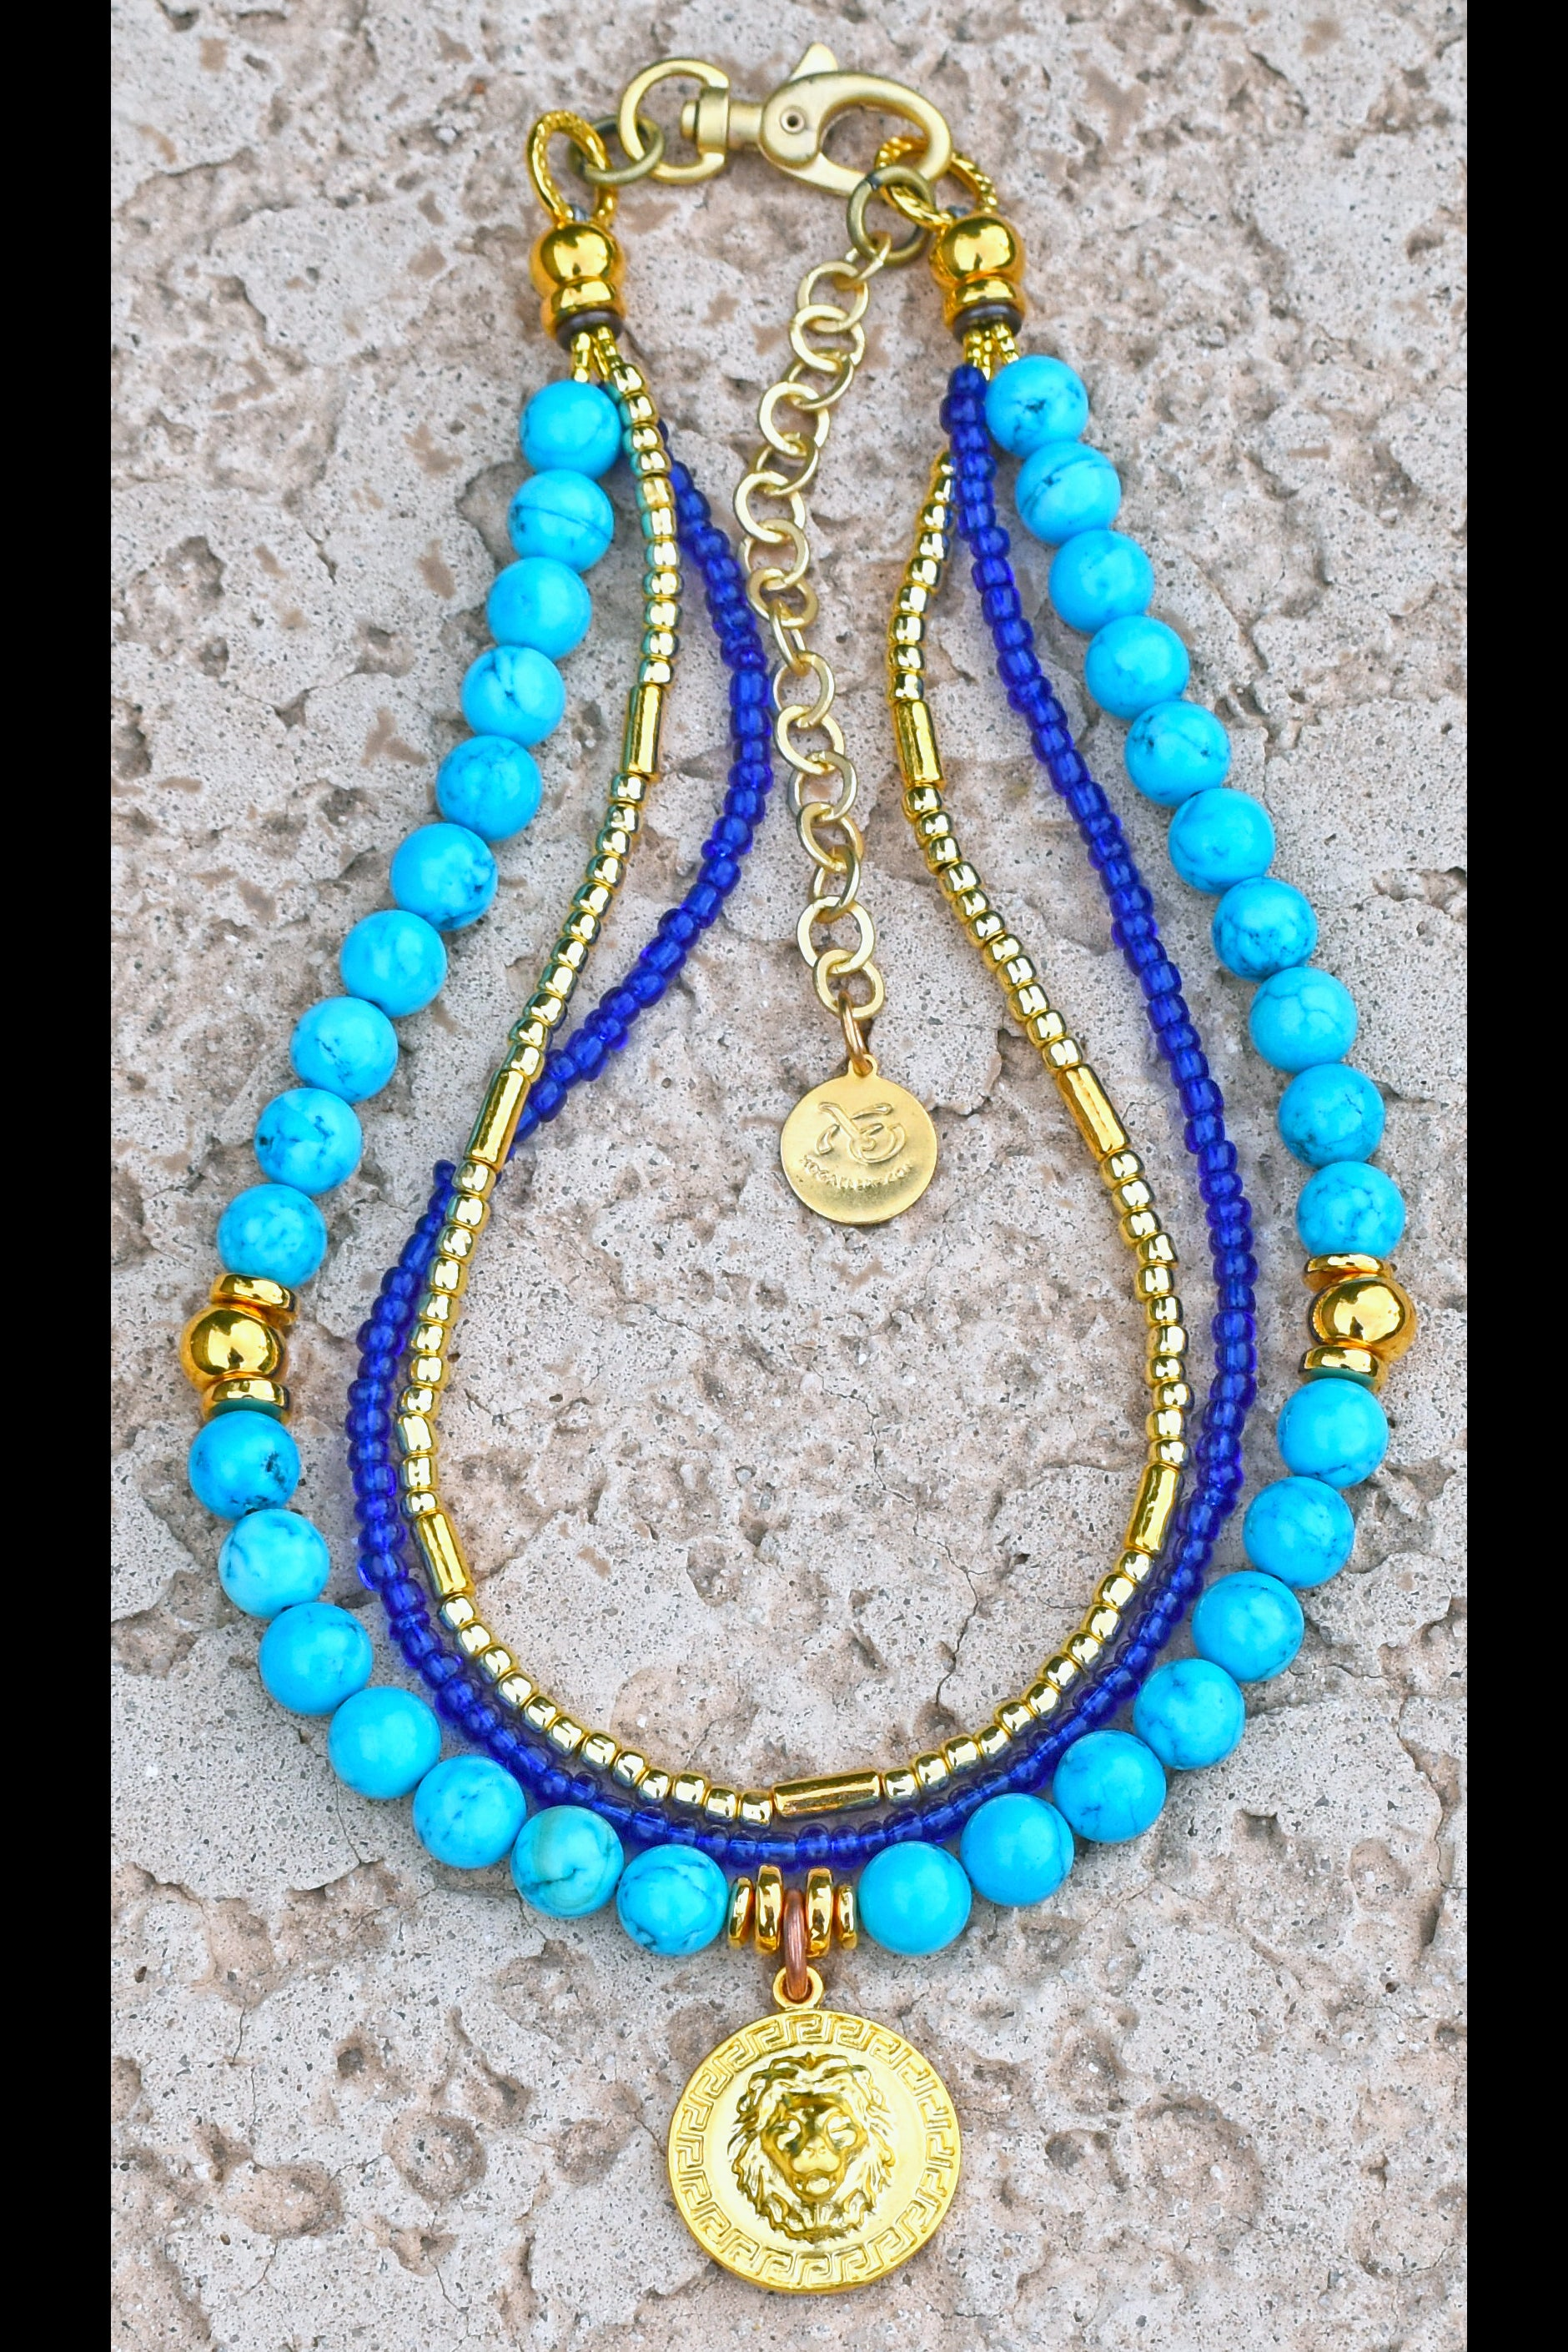 Greek Island Inspired Turquoise, Cobalt & Gold Lion Head Coin Necklace